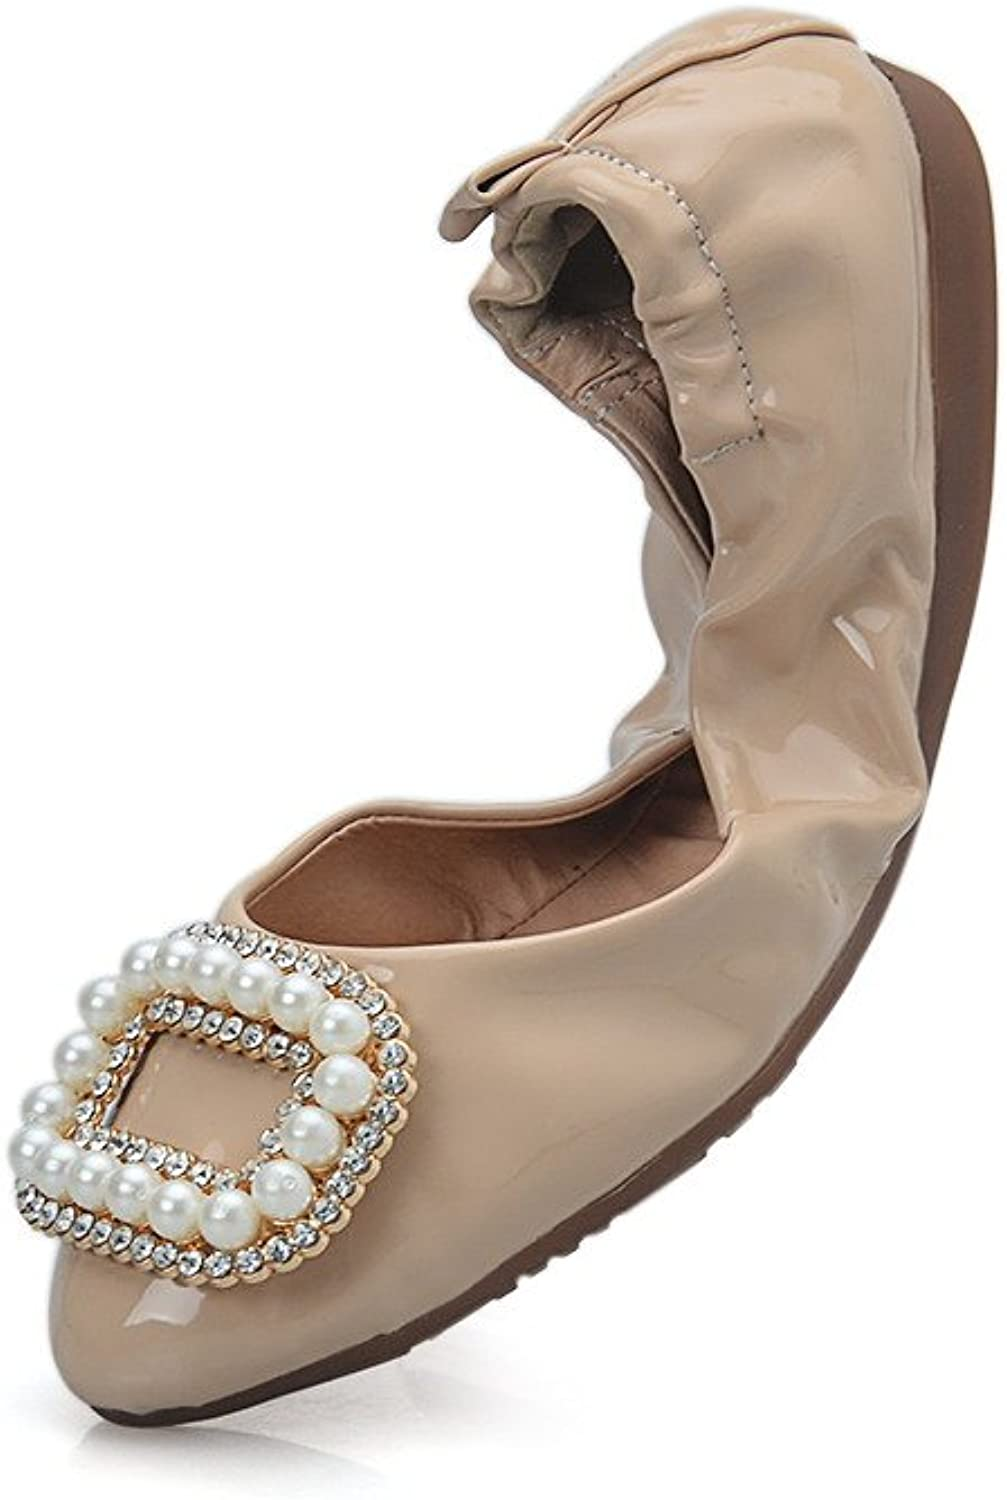 AllhqFashion Women's No Heel Solid Pull On Round Closed Toe Flats-shoes